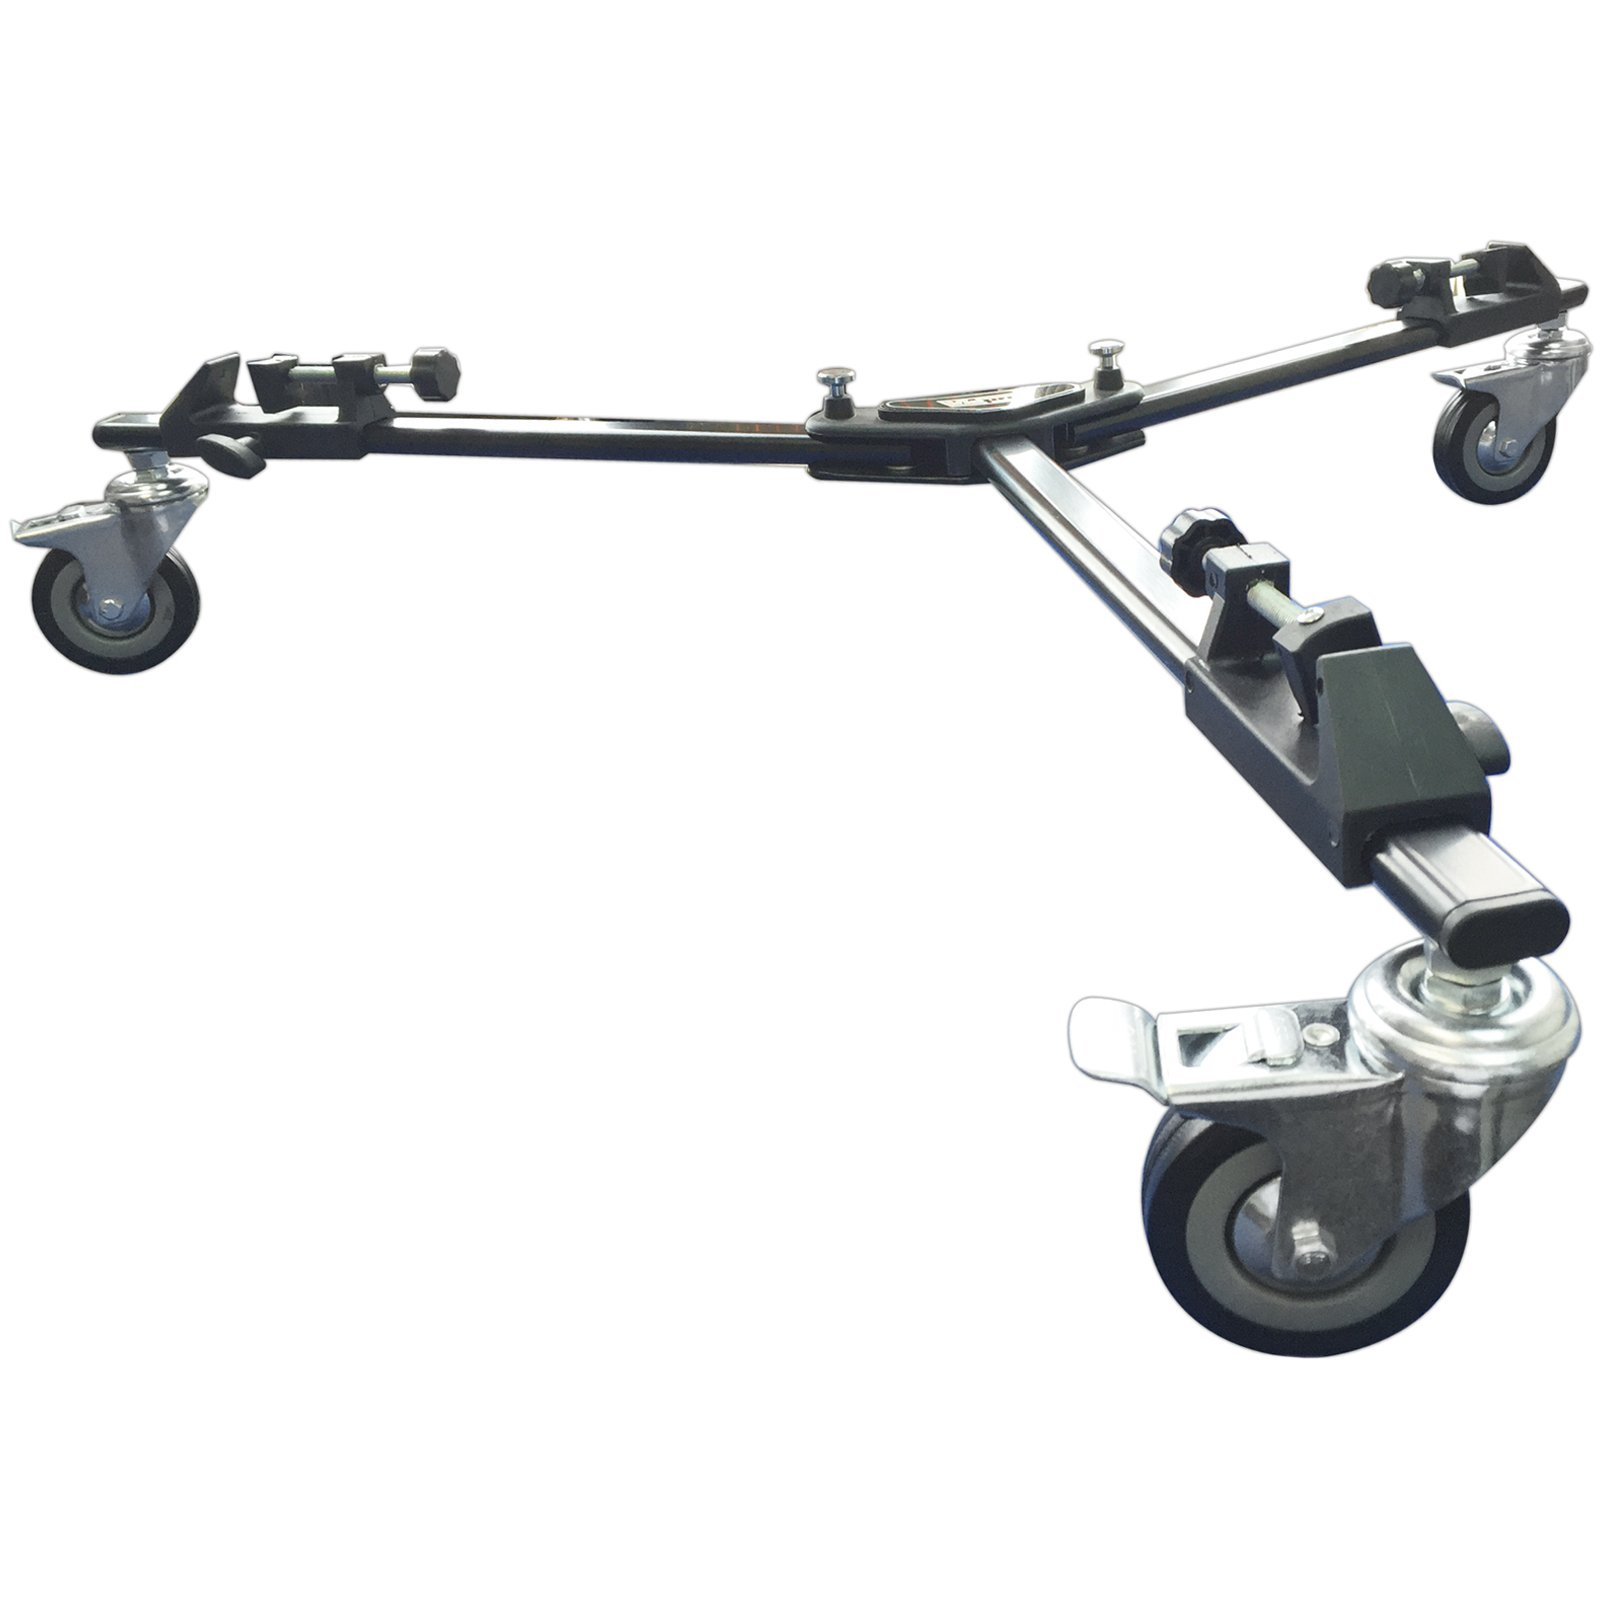 Vidpro PD-1 Professional Tripod Dolly Heavy-Duty with Locking Wheels and Carry Case